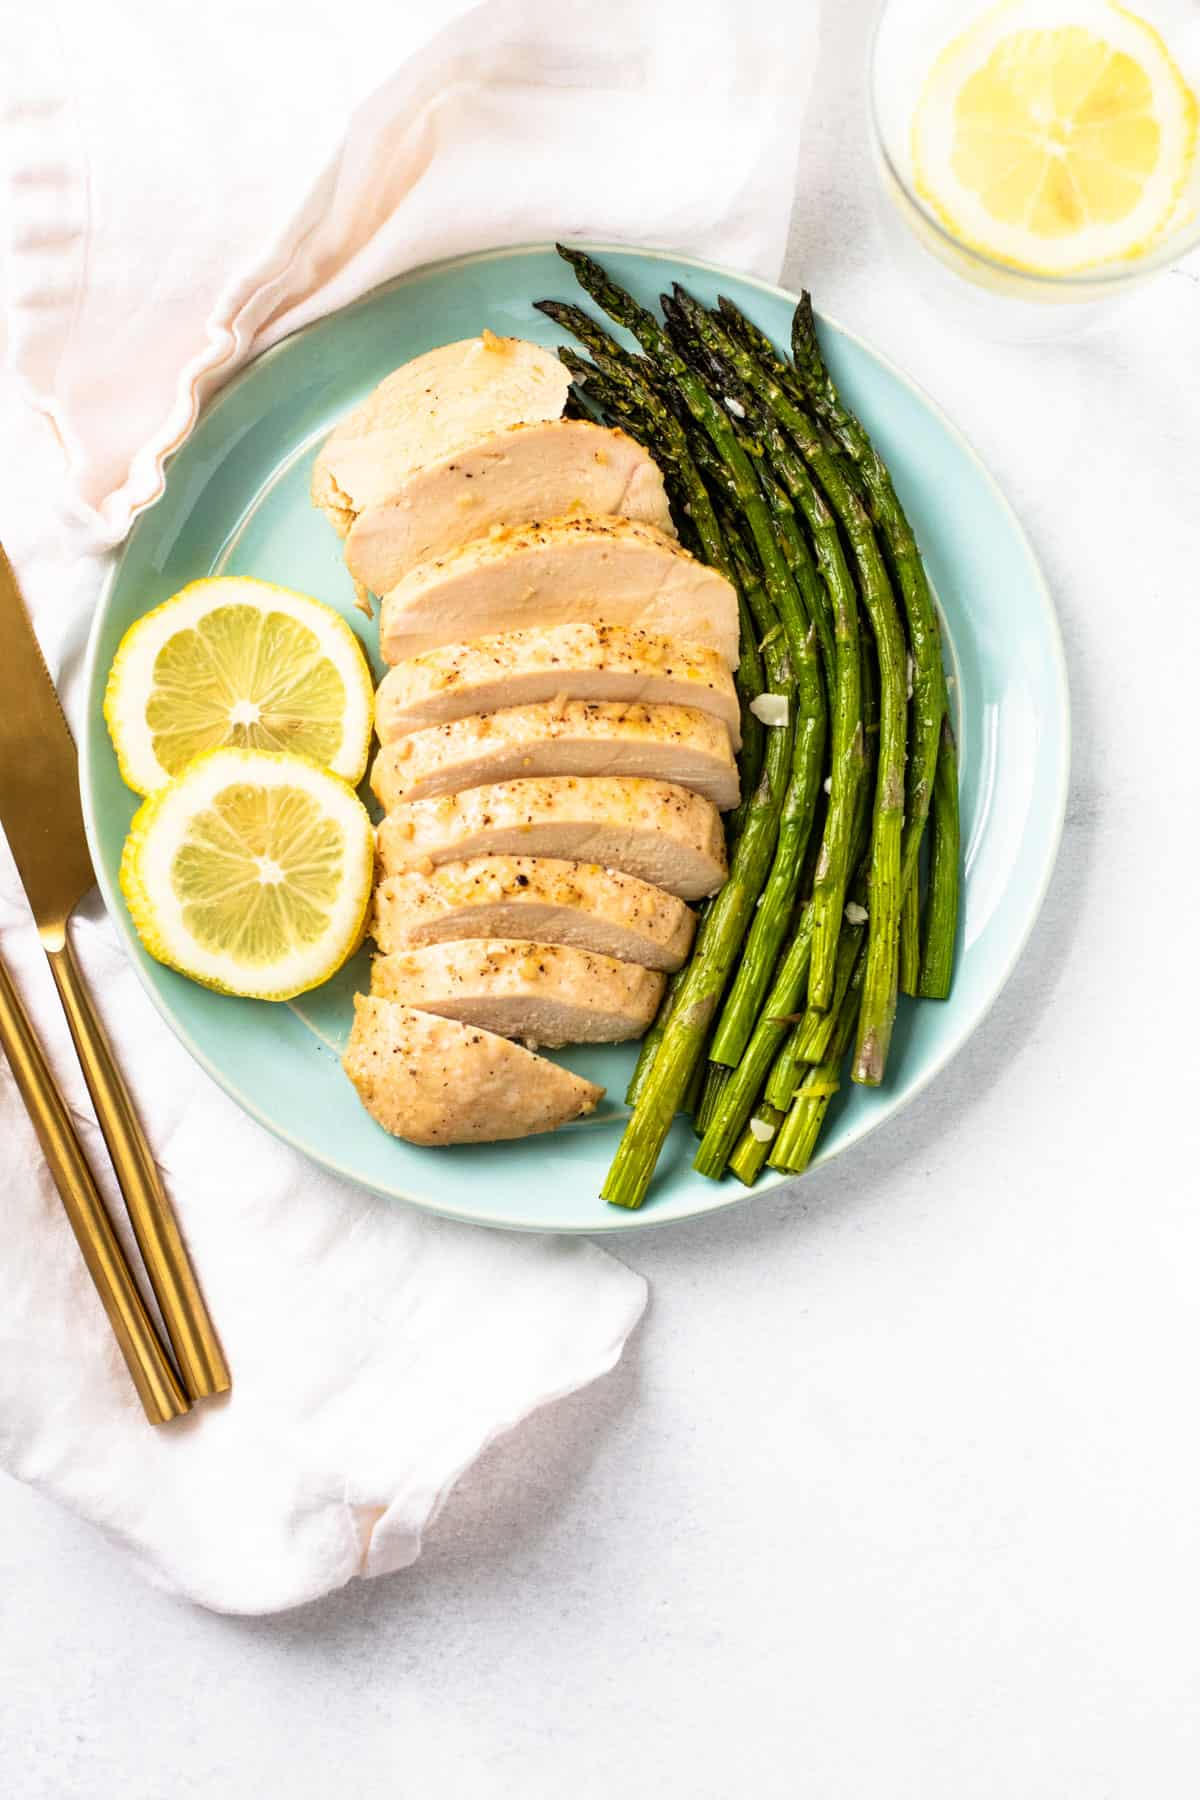 Air fryer asparagus served with a dish of chicken.